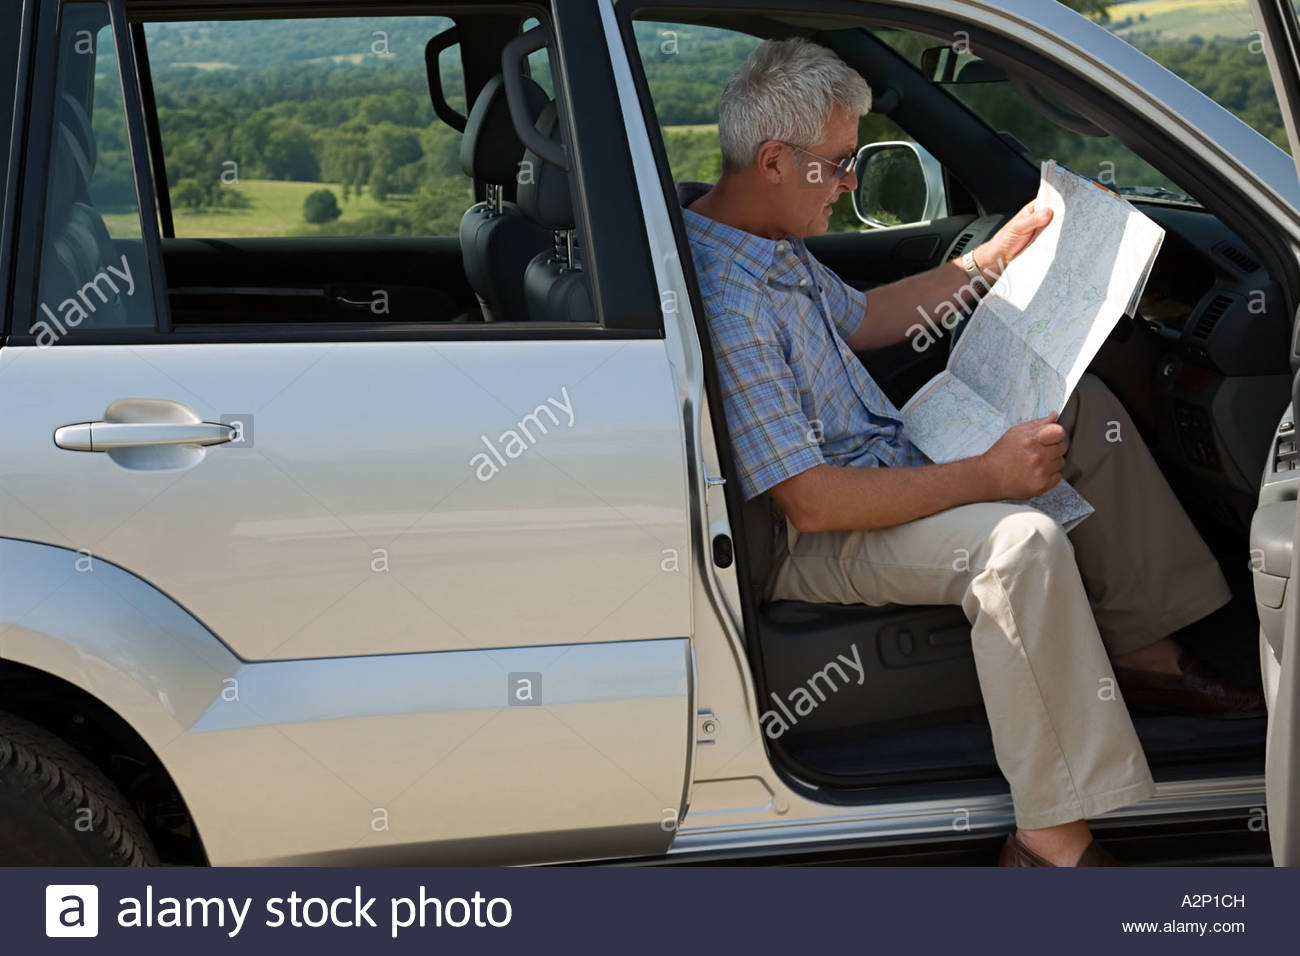 Man in car with map - Stock Image